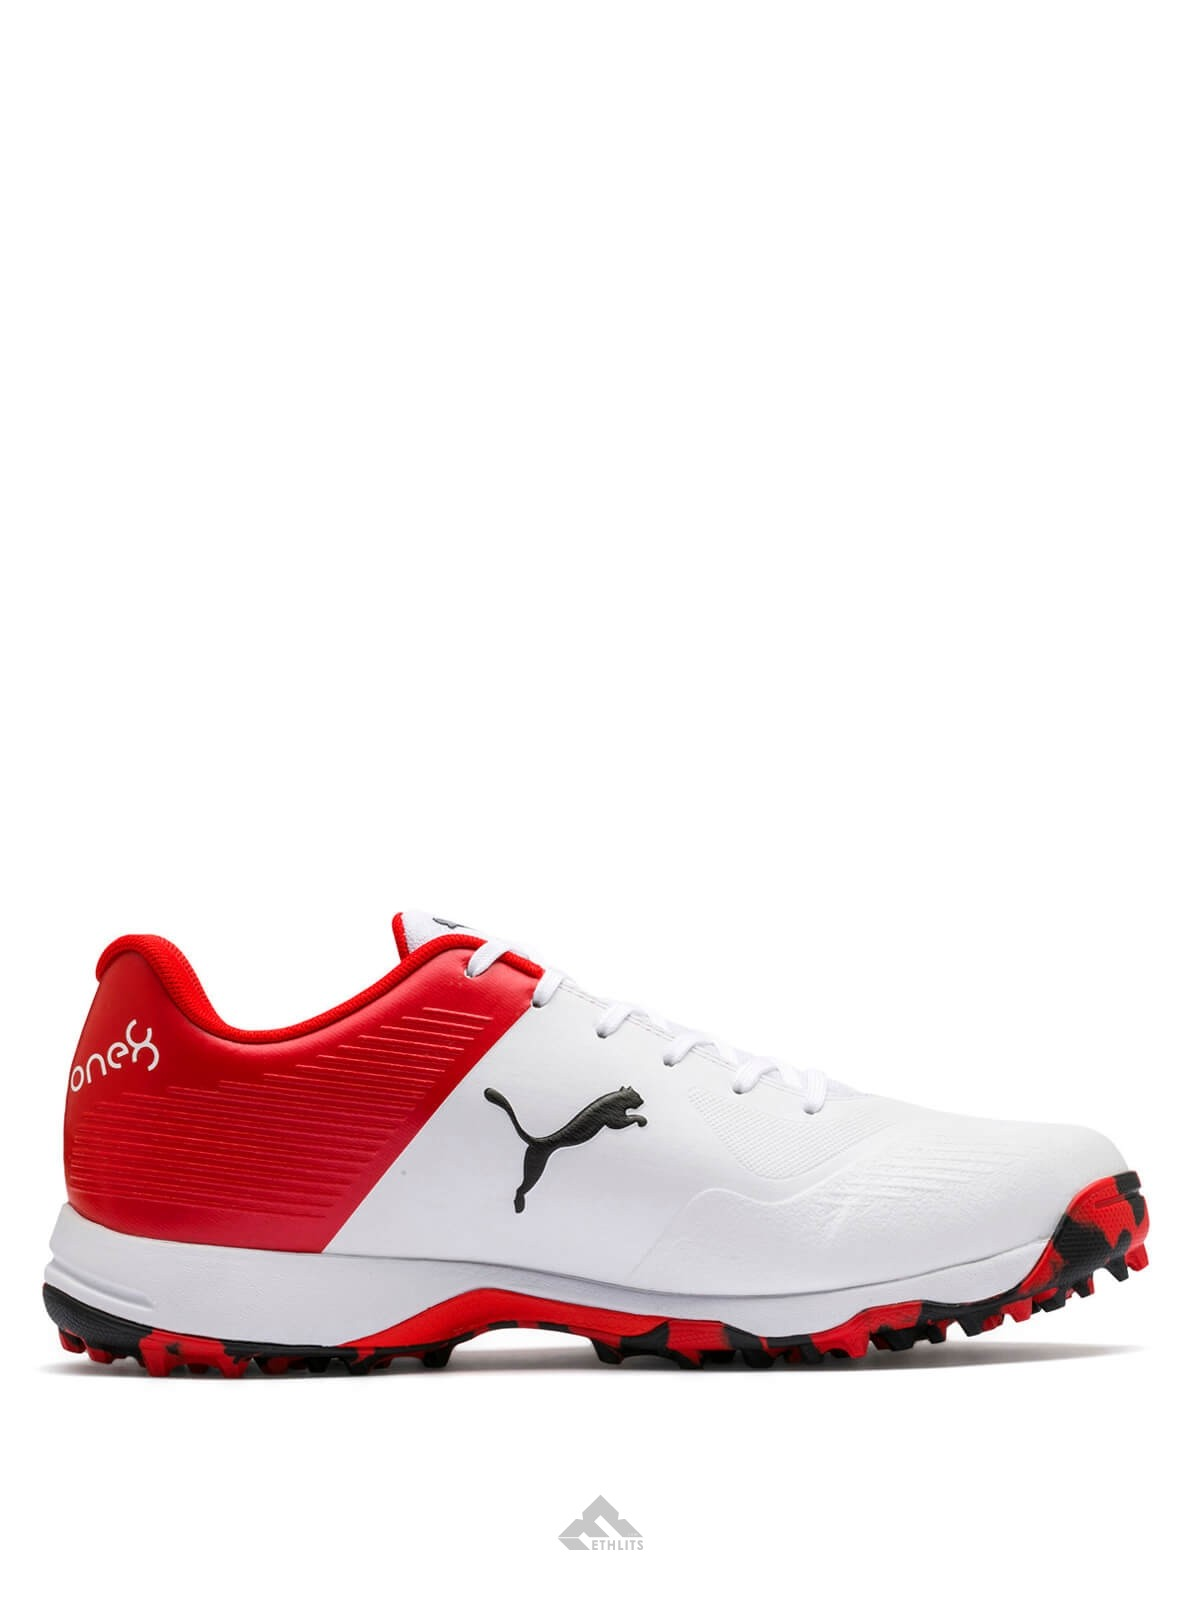 Buy Puma 19 FH RedWhite Rubber Spikes Men's Cricket Shoes